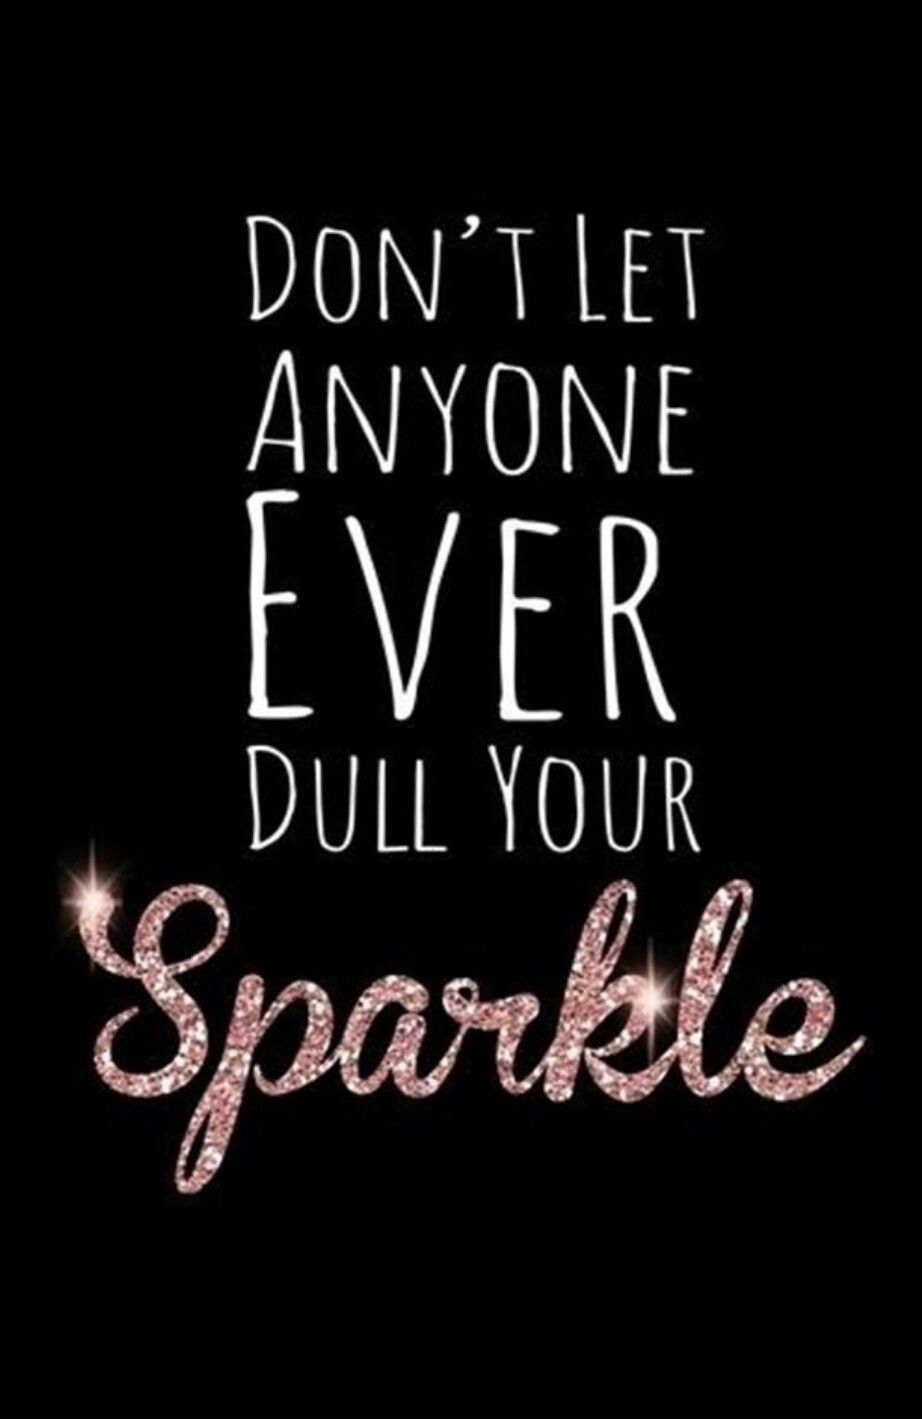 Pin By Jenelyn Deslate On Bts Pinterest Quotes Inspirational